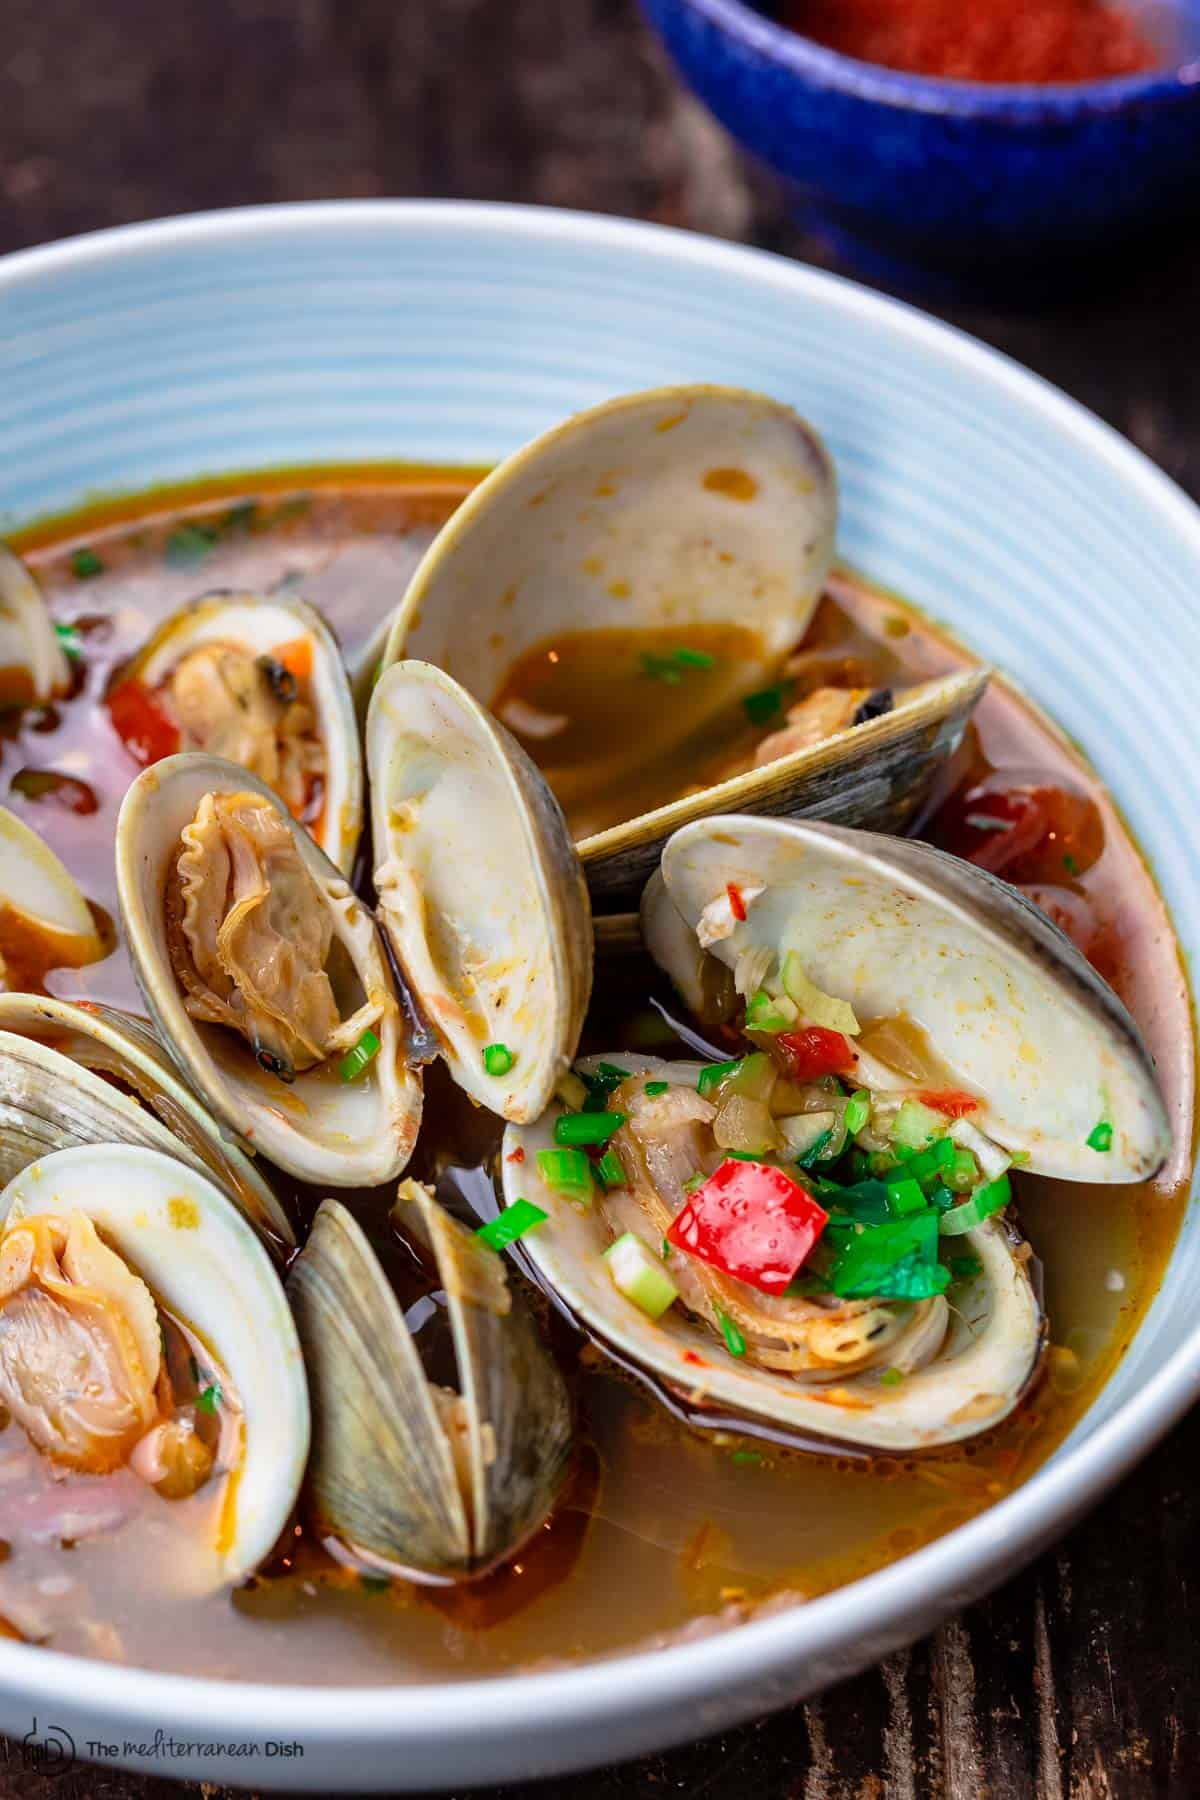 Steamed clams with broth in a serving bowl